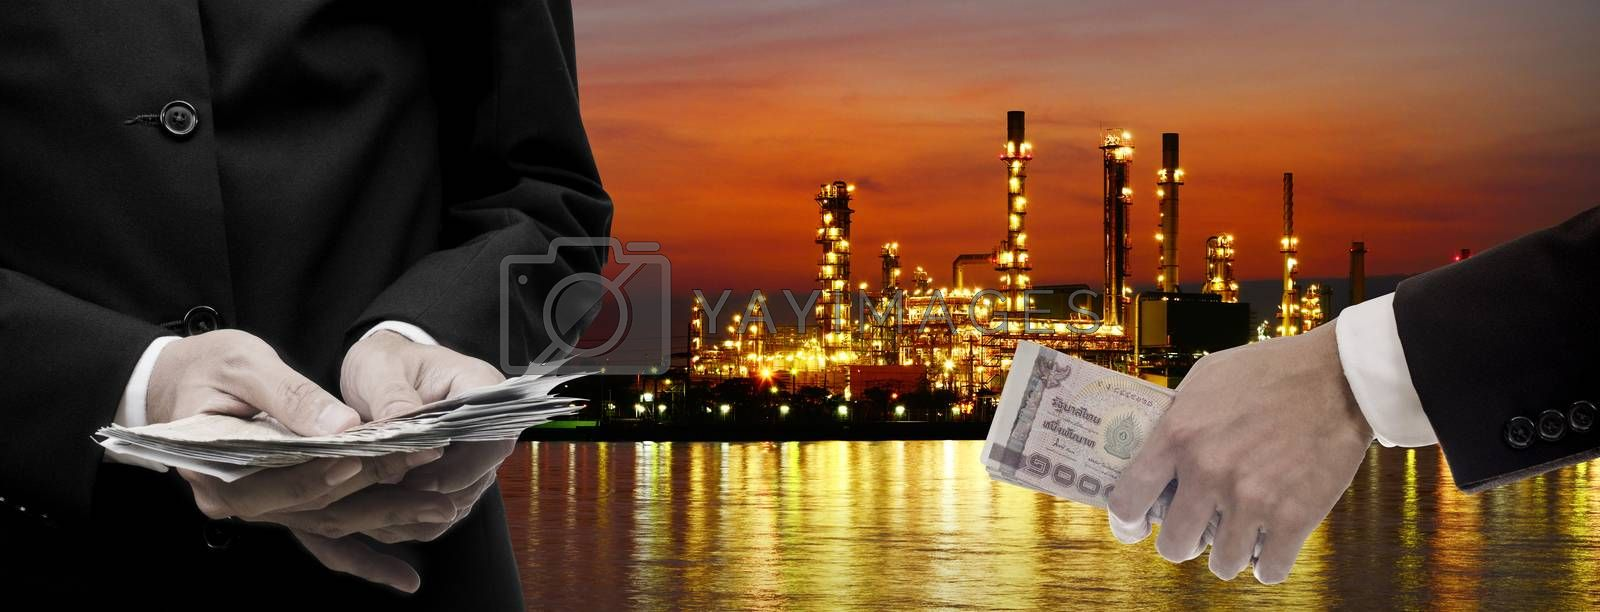 Make money from oil refinery business concept